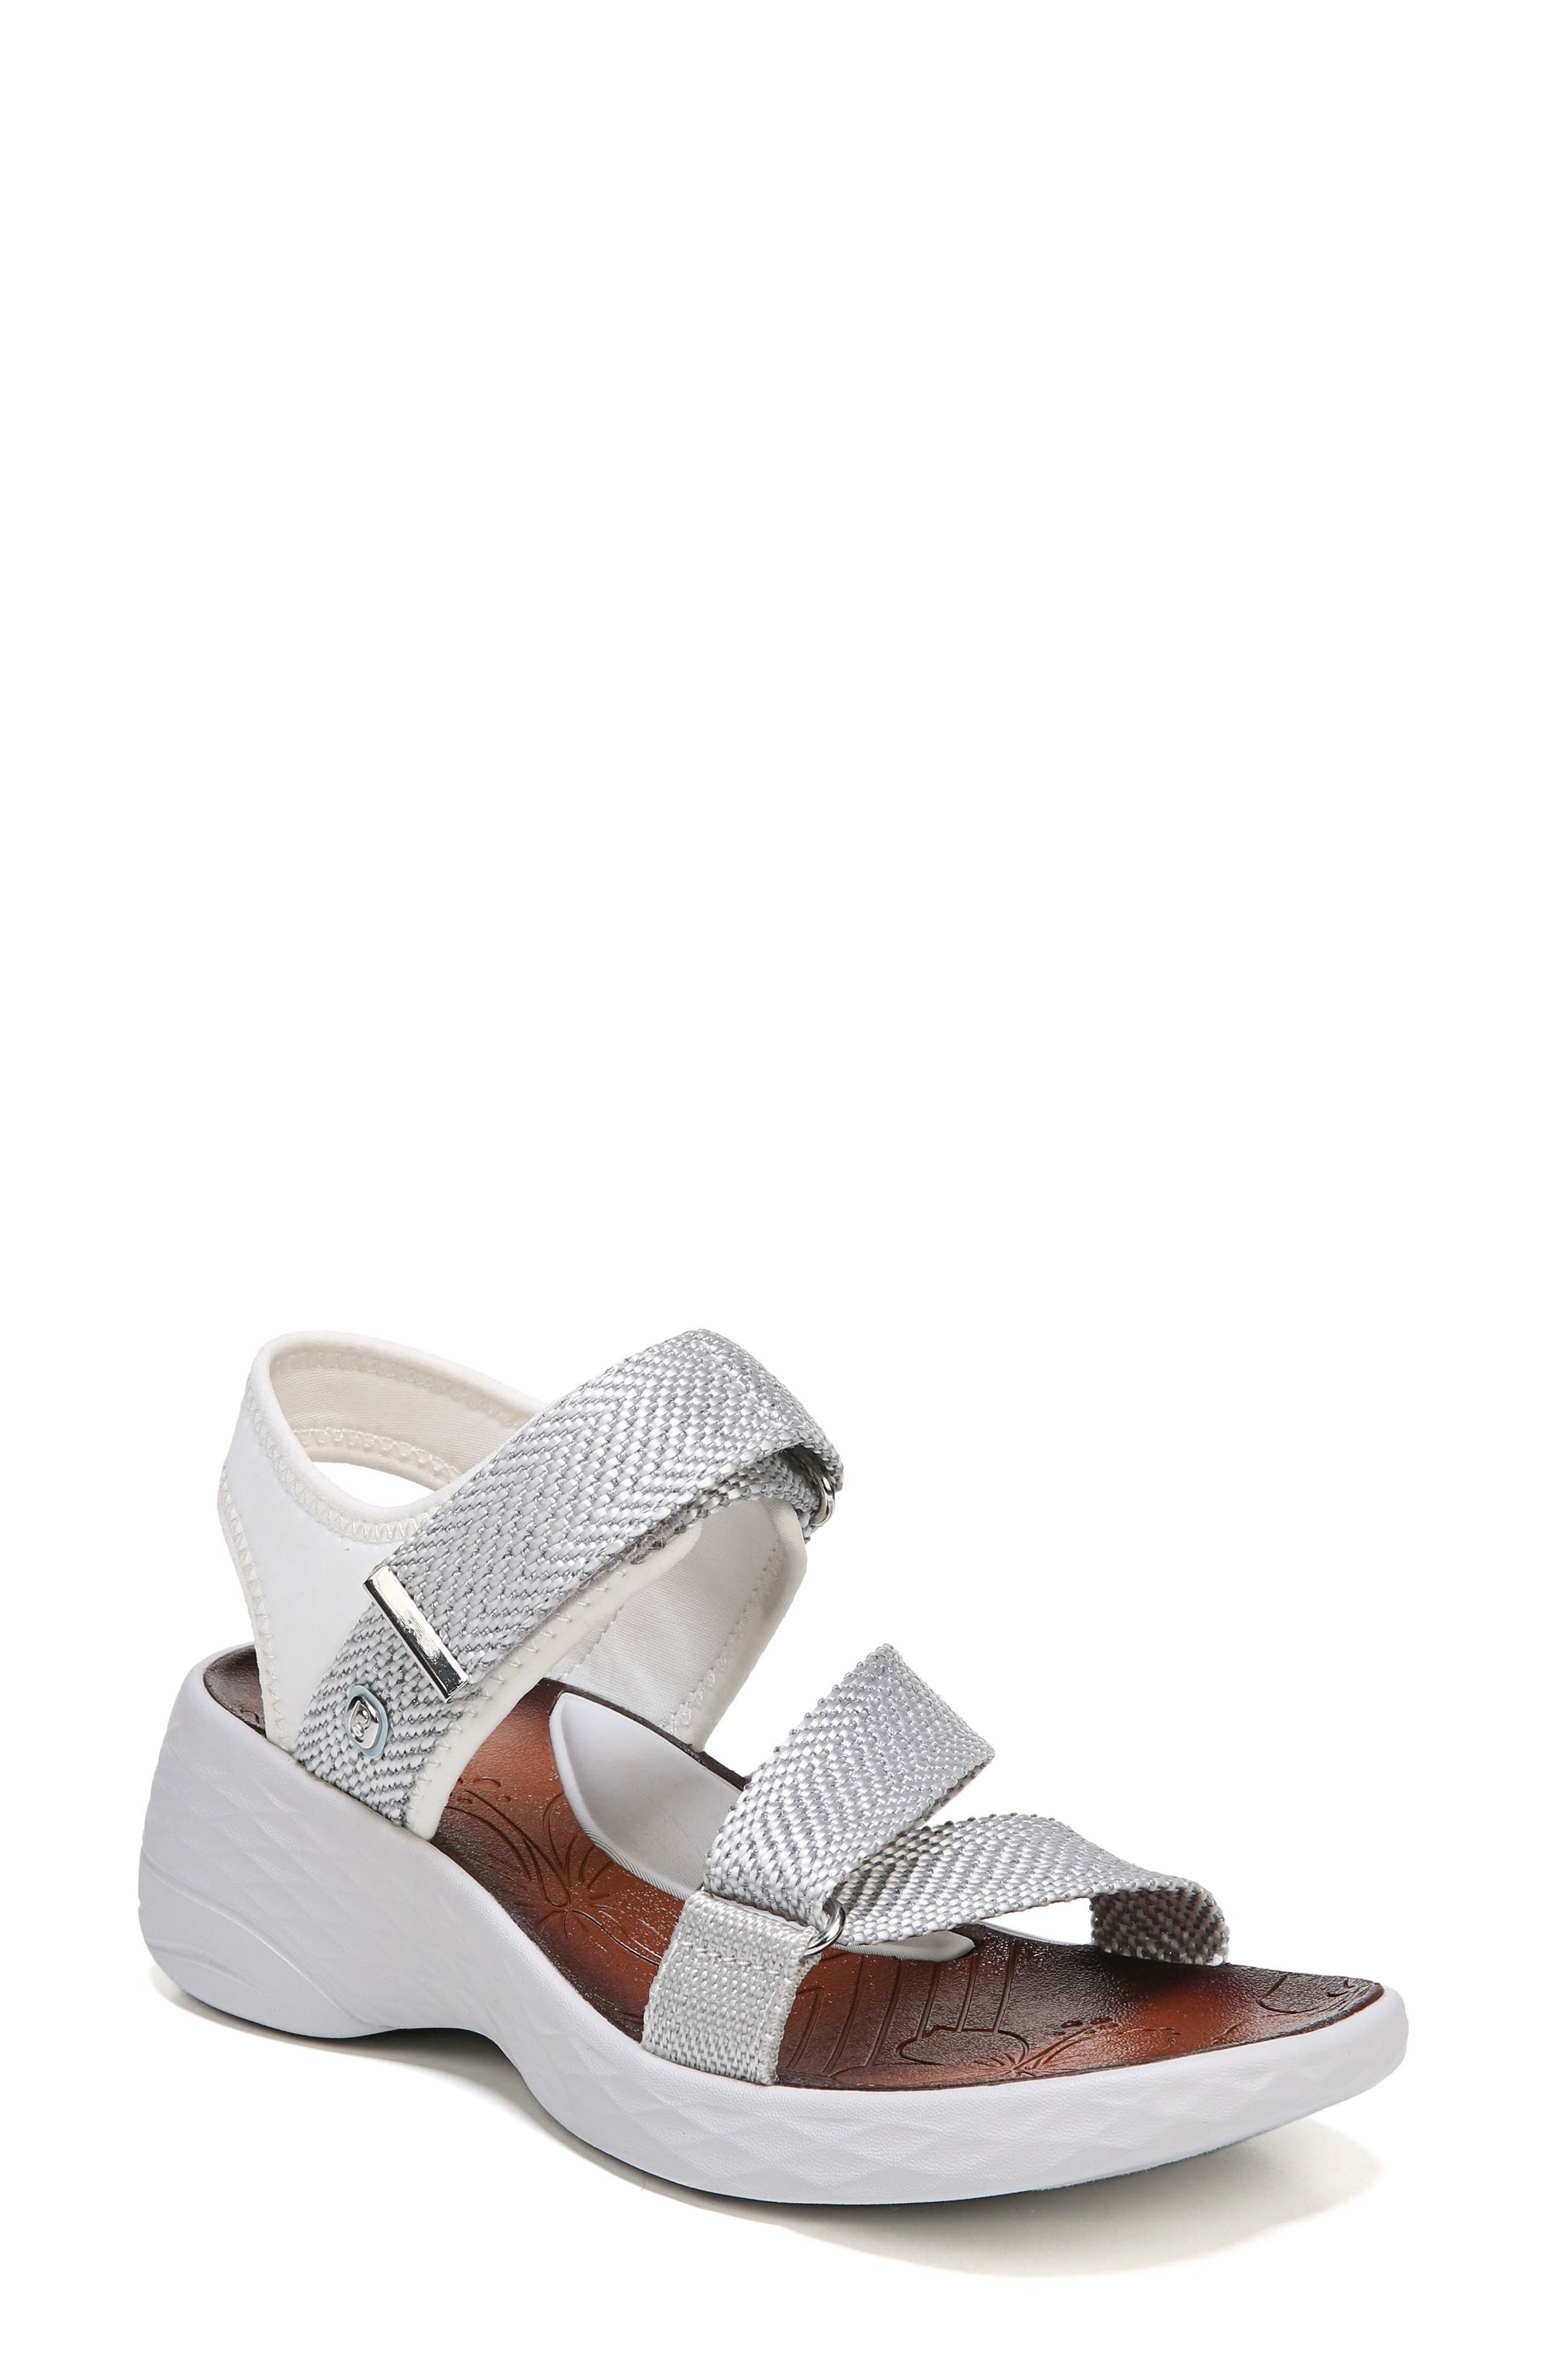 Jive Sandal,                             Main thumbnail 1, color,                             White Fabric